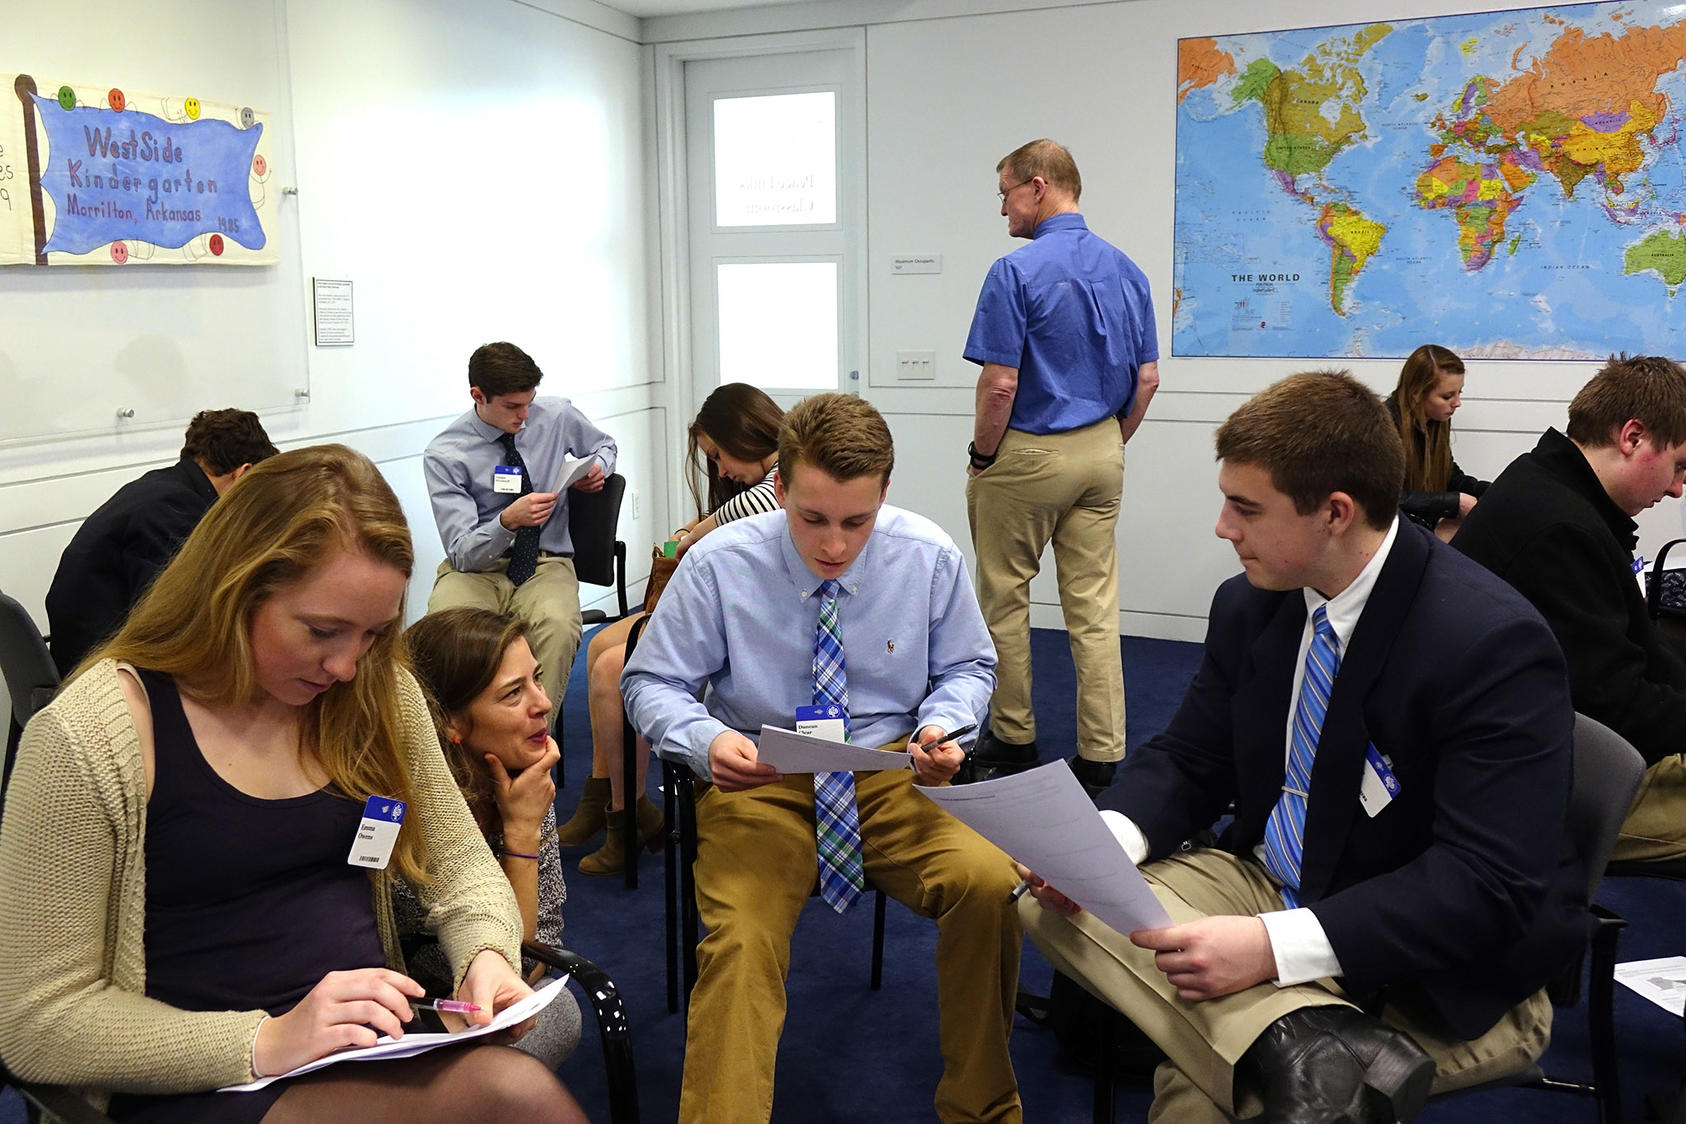 Students from Champlain Valley Union High School participate in an educational workshop at the U.S. Institute of Peace.